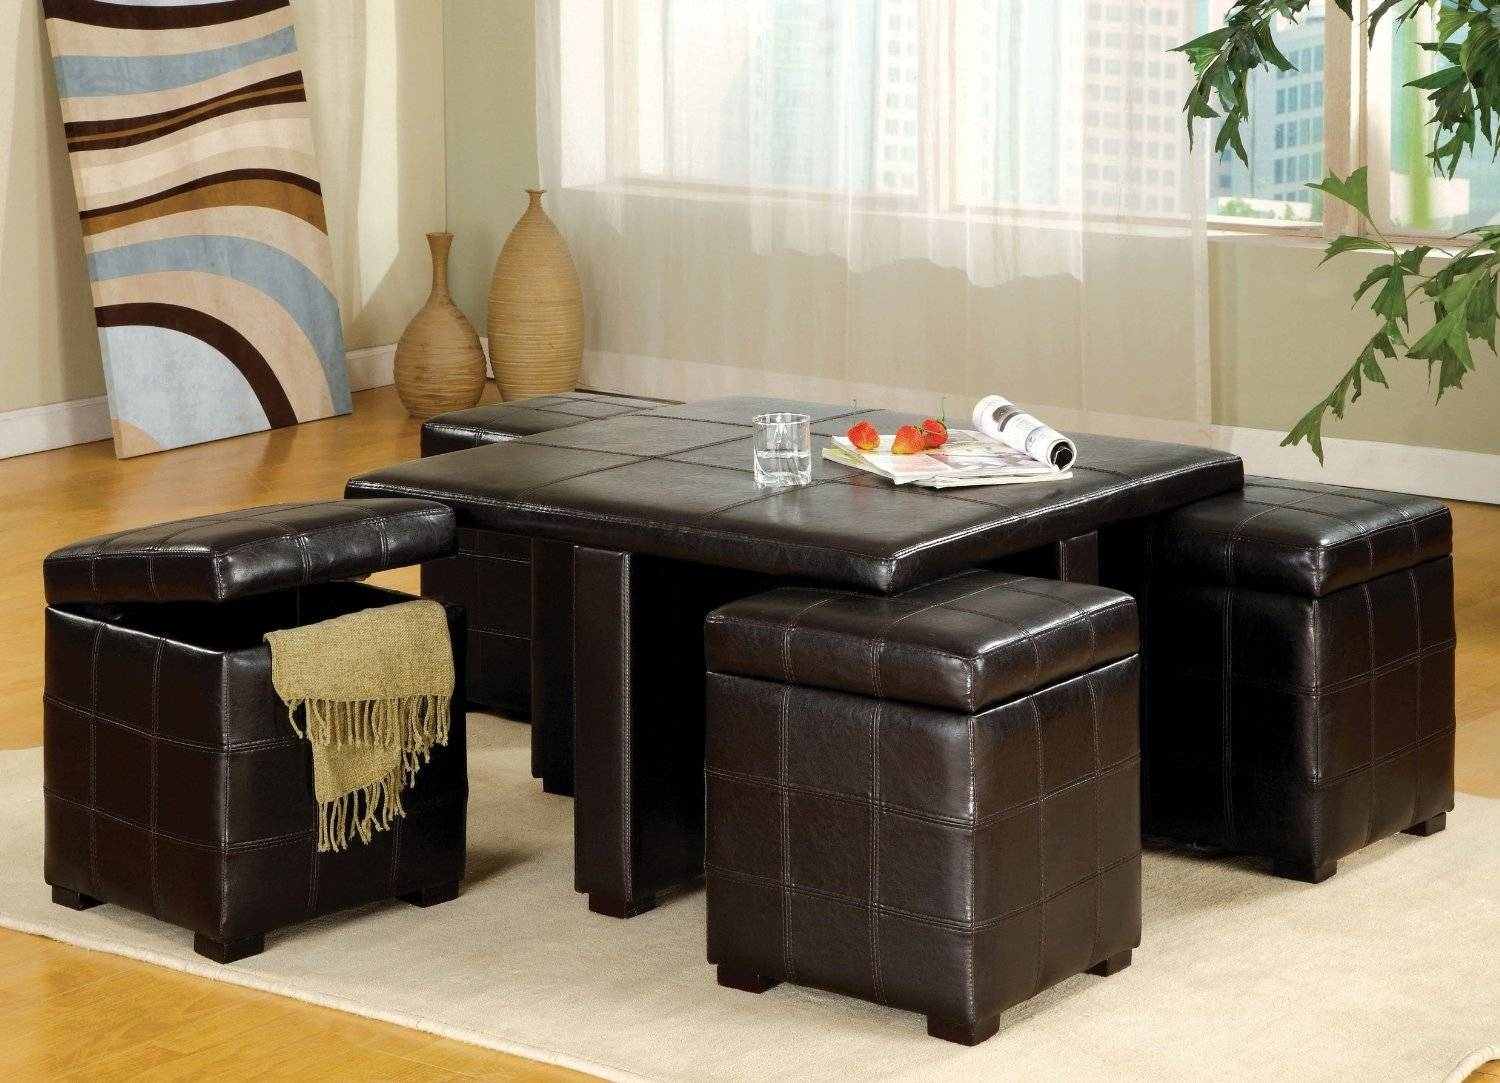 Leather Ottoman Coffee Table Storage | Coffee Tables Decoration with regard to Square Coffee Tables With Storages (Image 19 of 30)